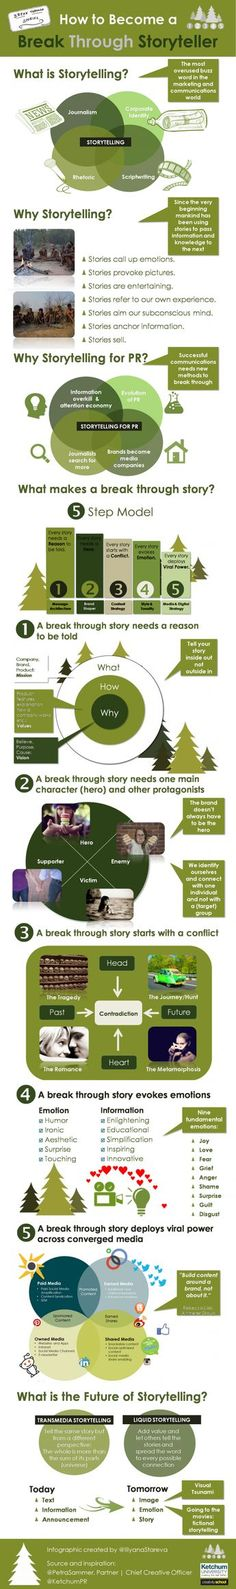 How to Become a Break Through Storyteller #Infographic #Storytelling #Toastmasters